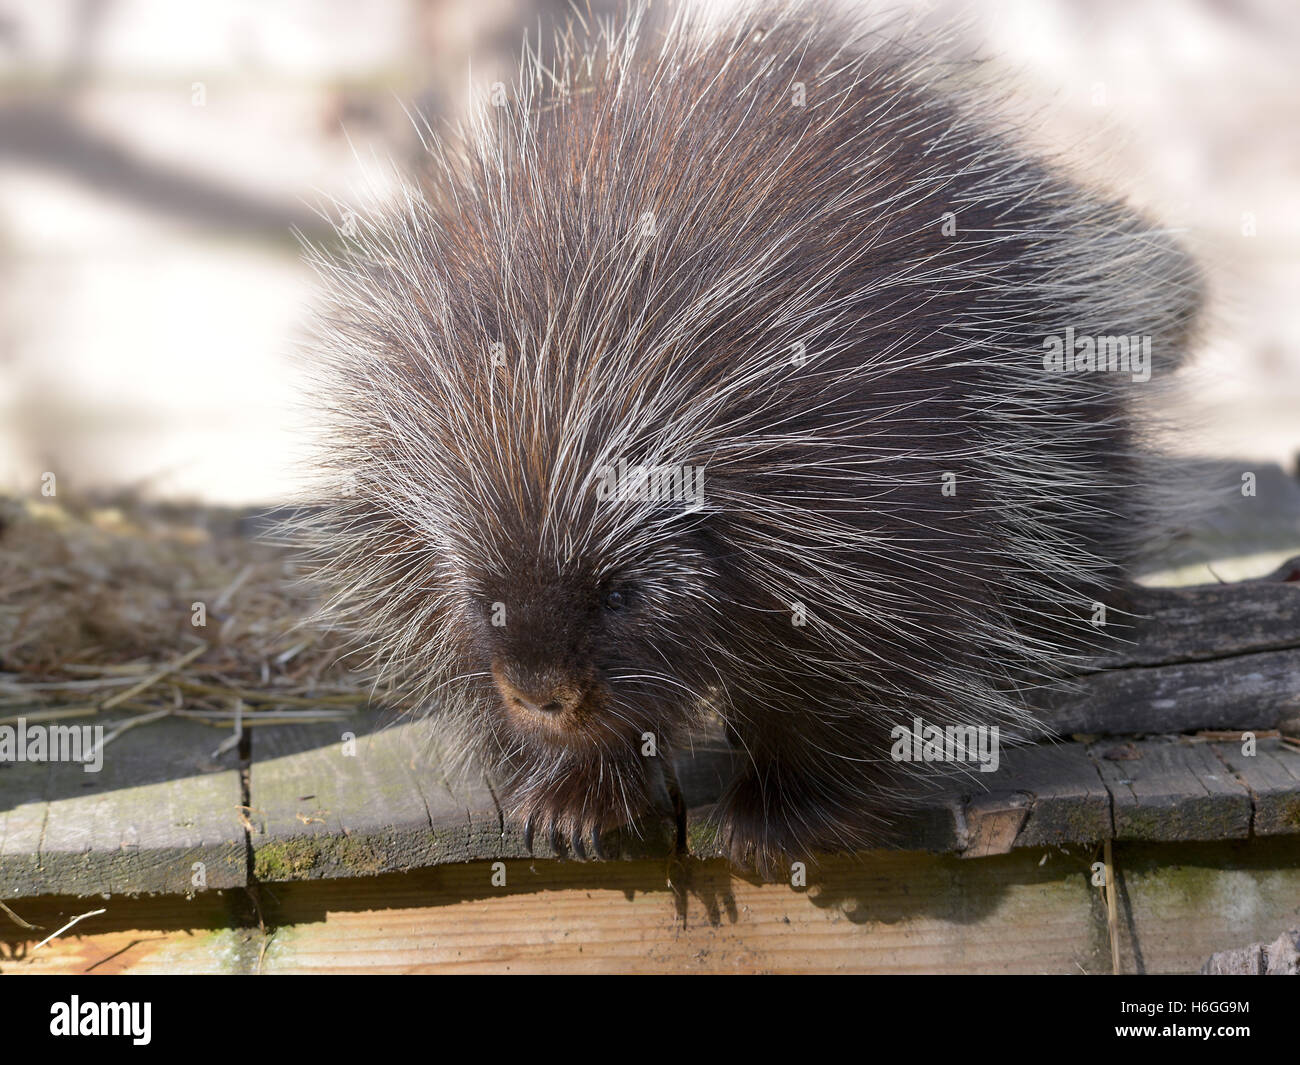 The North American porcupine (Erethizon dorsatum), also known as the Canadian porcupine or common porcupine, on - Stock Image